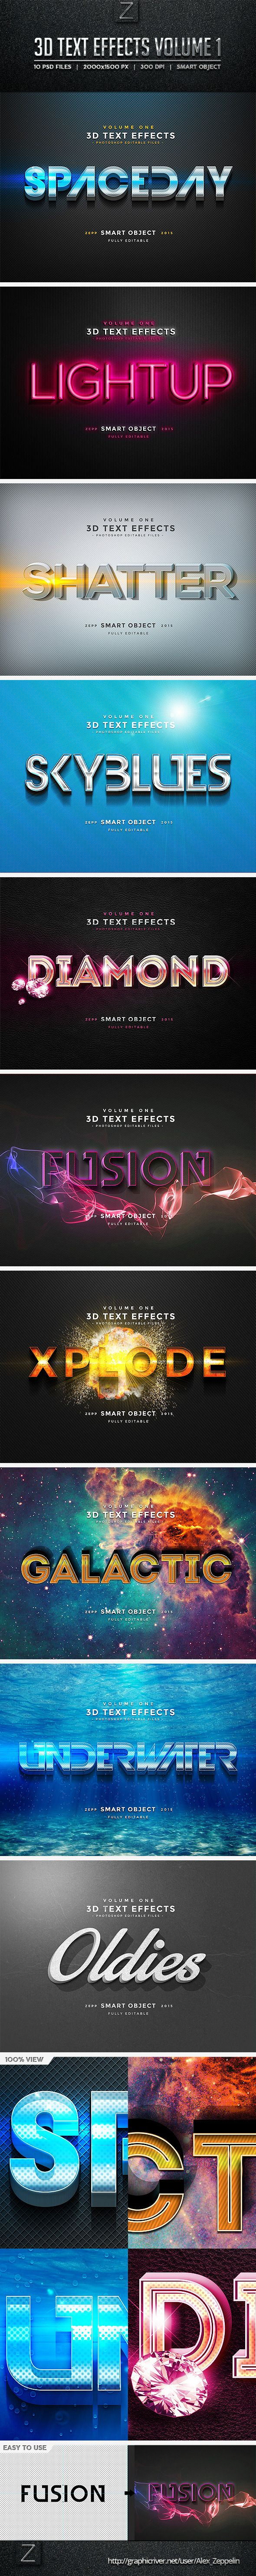 3D Text Effects Vol.1 #photoshop Download here: http://graphicriver.net/item/3d-text-effects-vol1/10156254?ref=ksioks